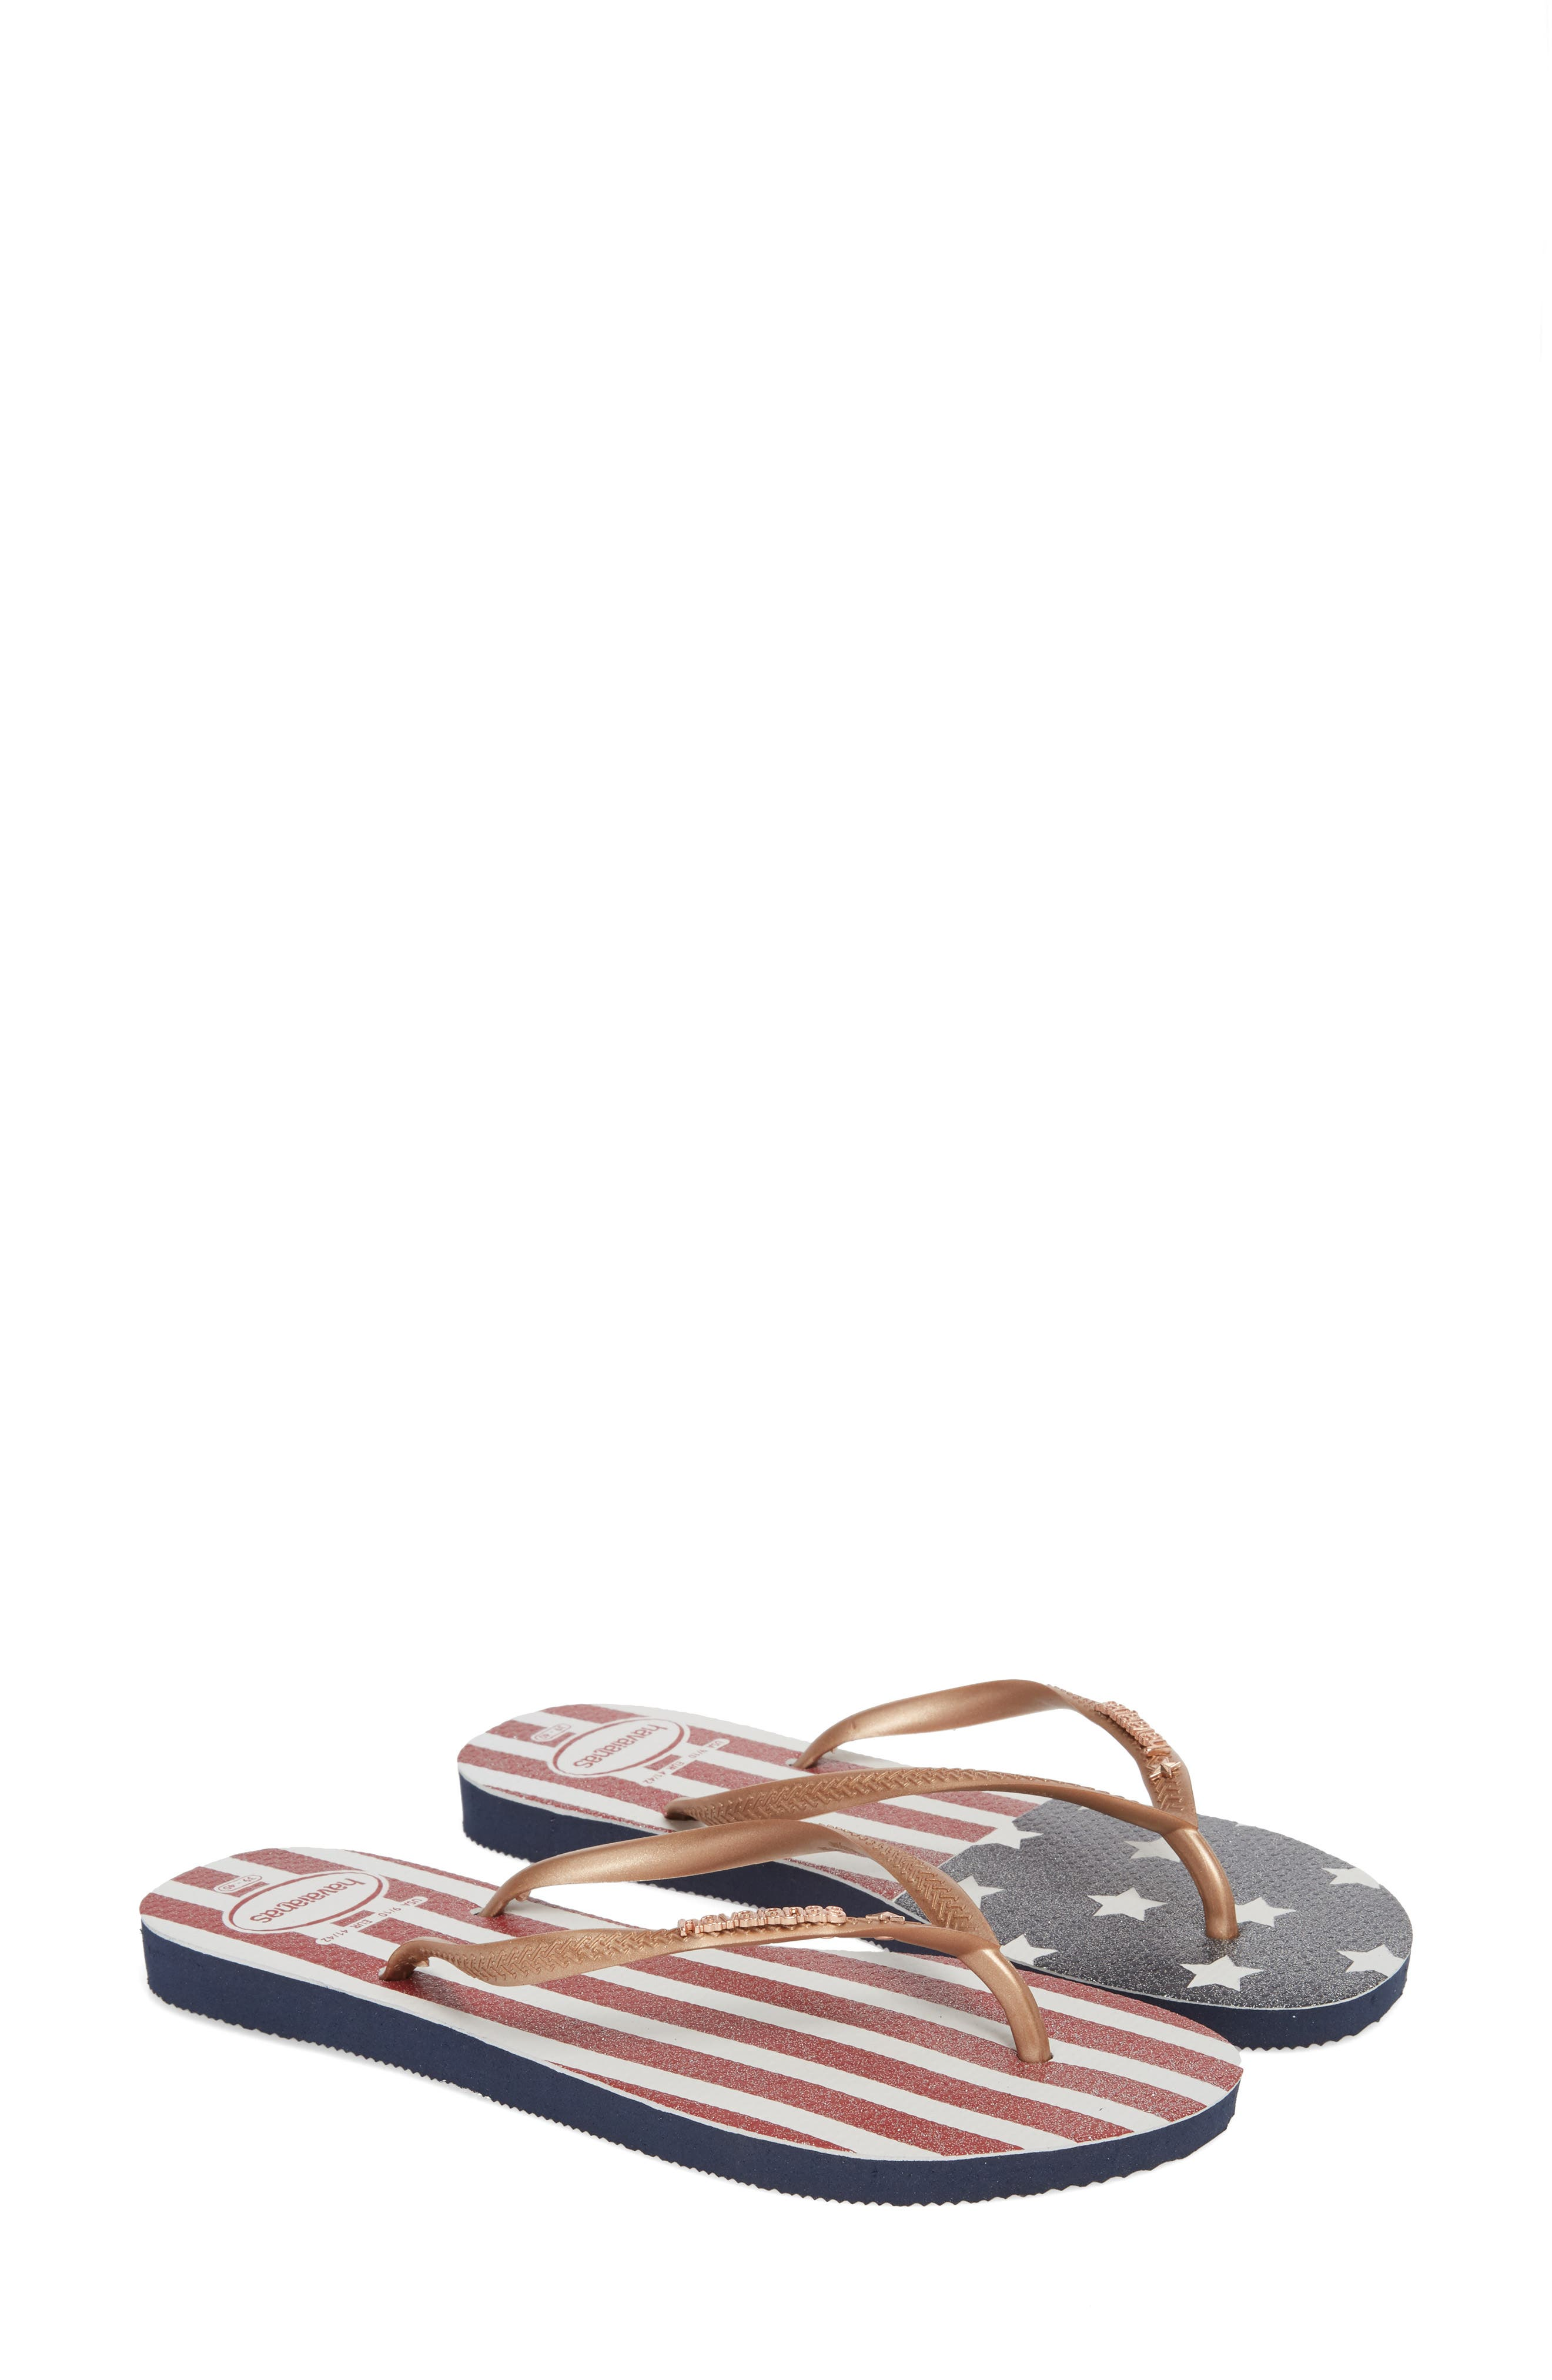 HAVAIANAS USA Slim Flip Flop, Main, color, 403